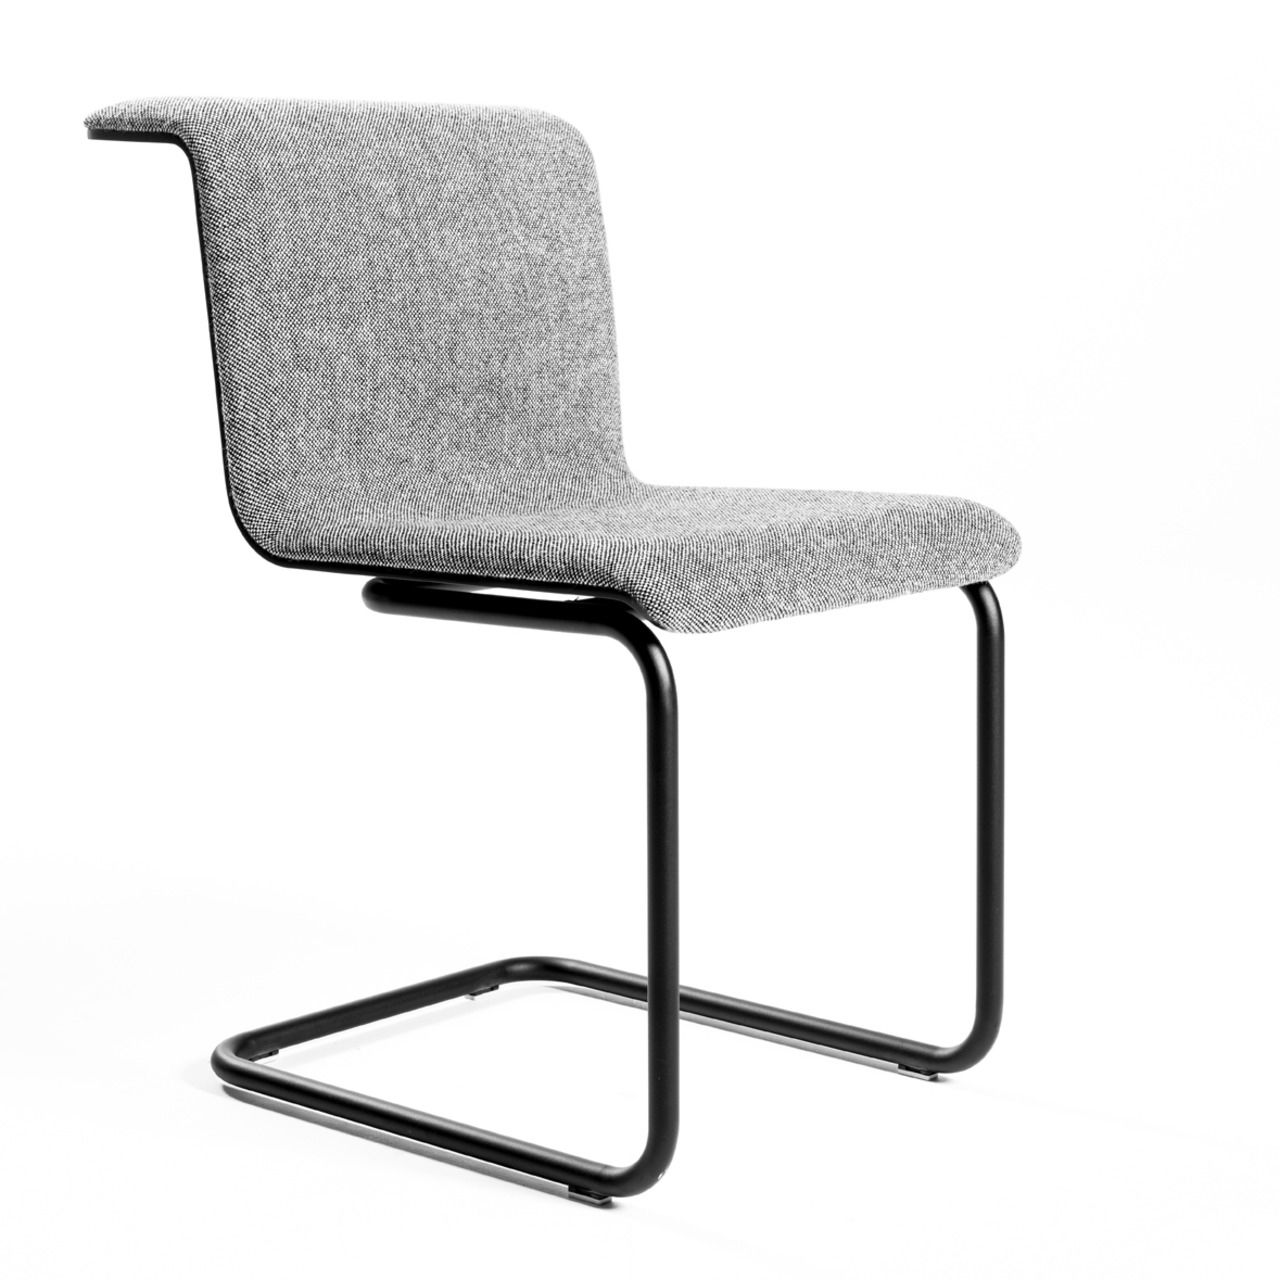 Best Contemporary chair / upholstered / sled base / fabric - TAB by  NZ56